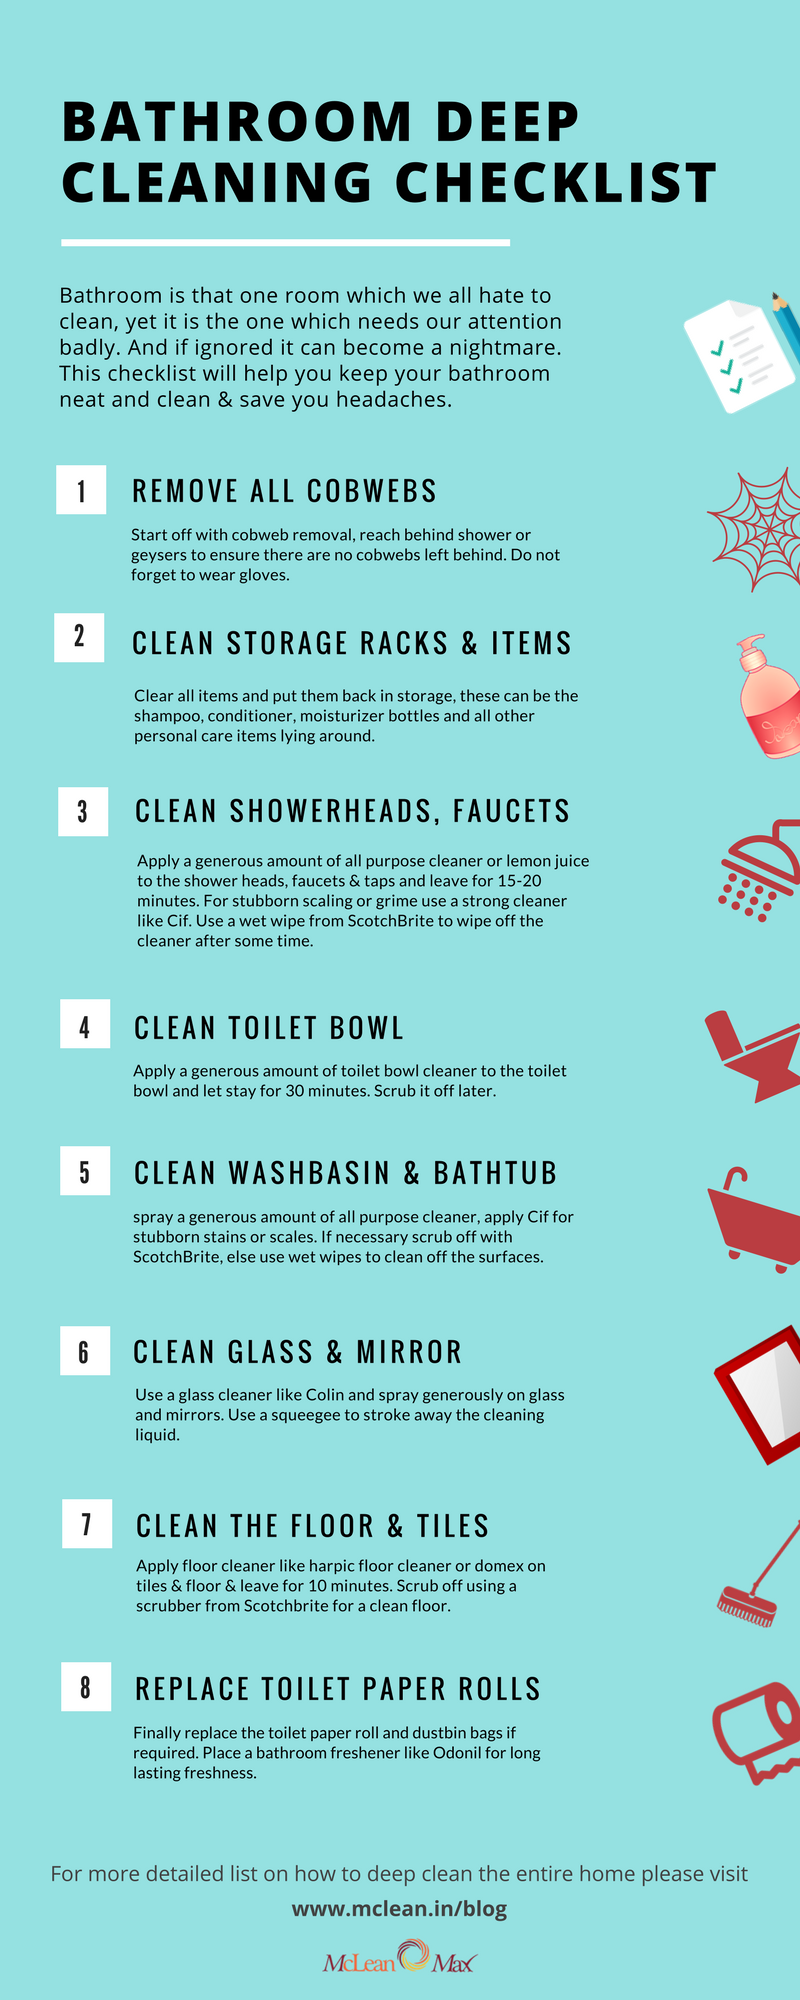 Bathroom Deep Cleaning Checklist Deep Clean Your Bathroom With This Simple Step By Step Guide Bathr Deep Cleaning Checklist Cleaning Checklist Clean House